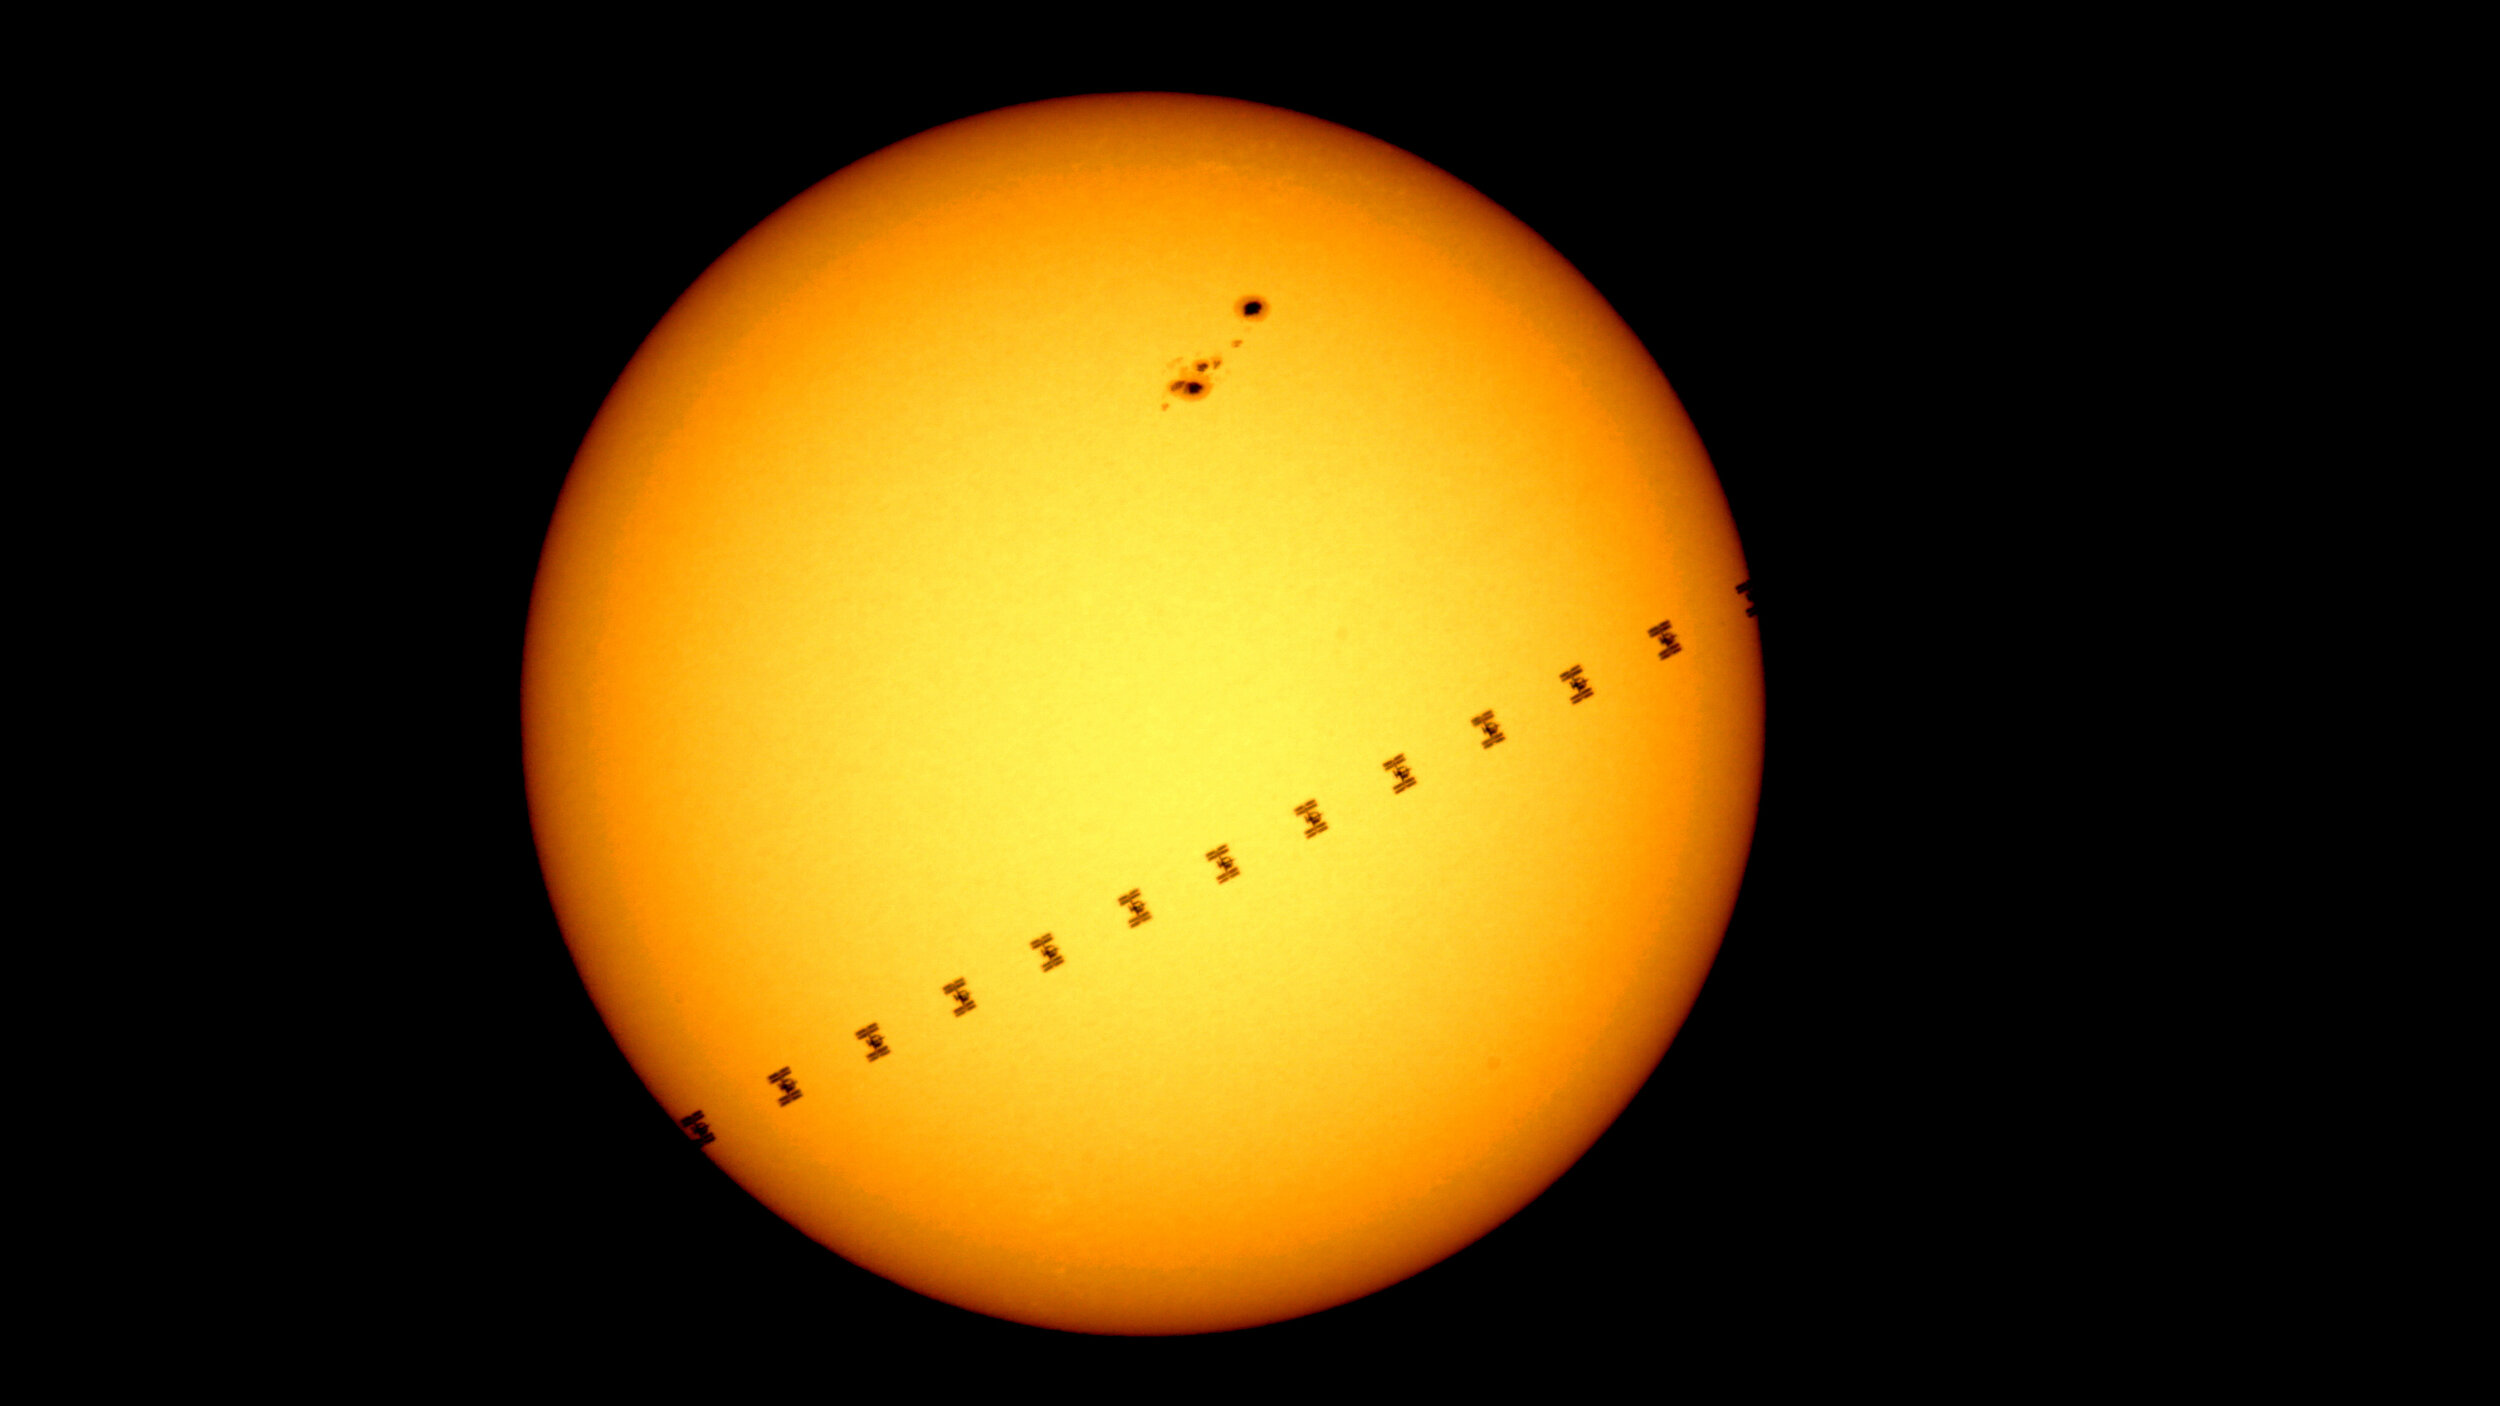 The International Space Station flies in front of the sun, July 2015, Cocoa, Florida.